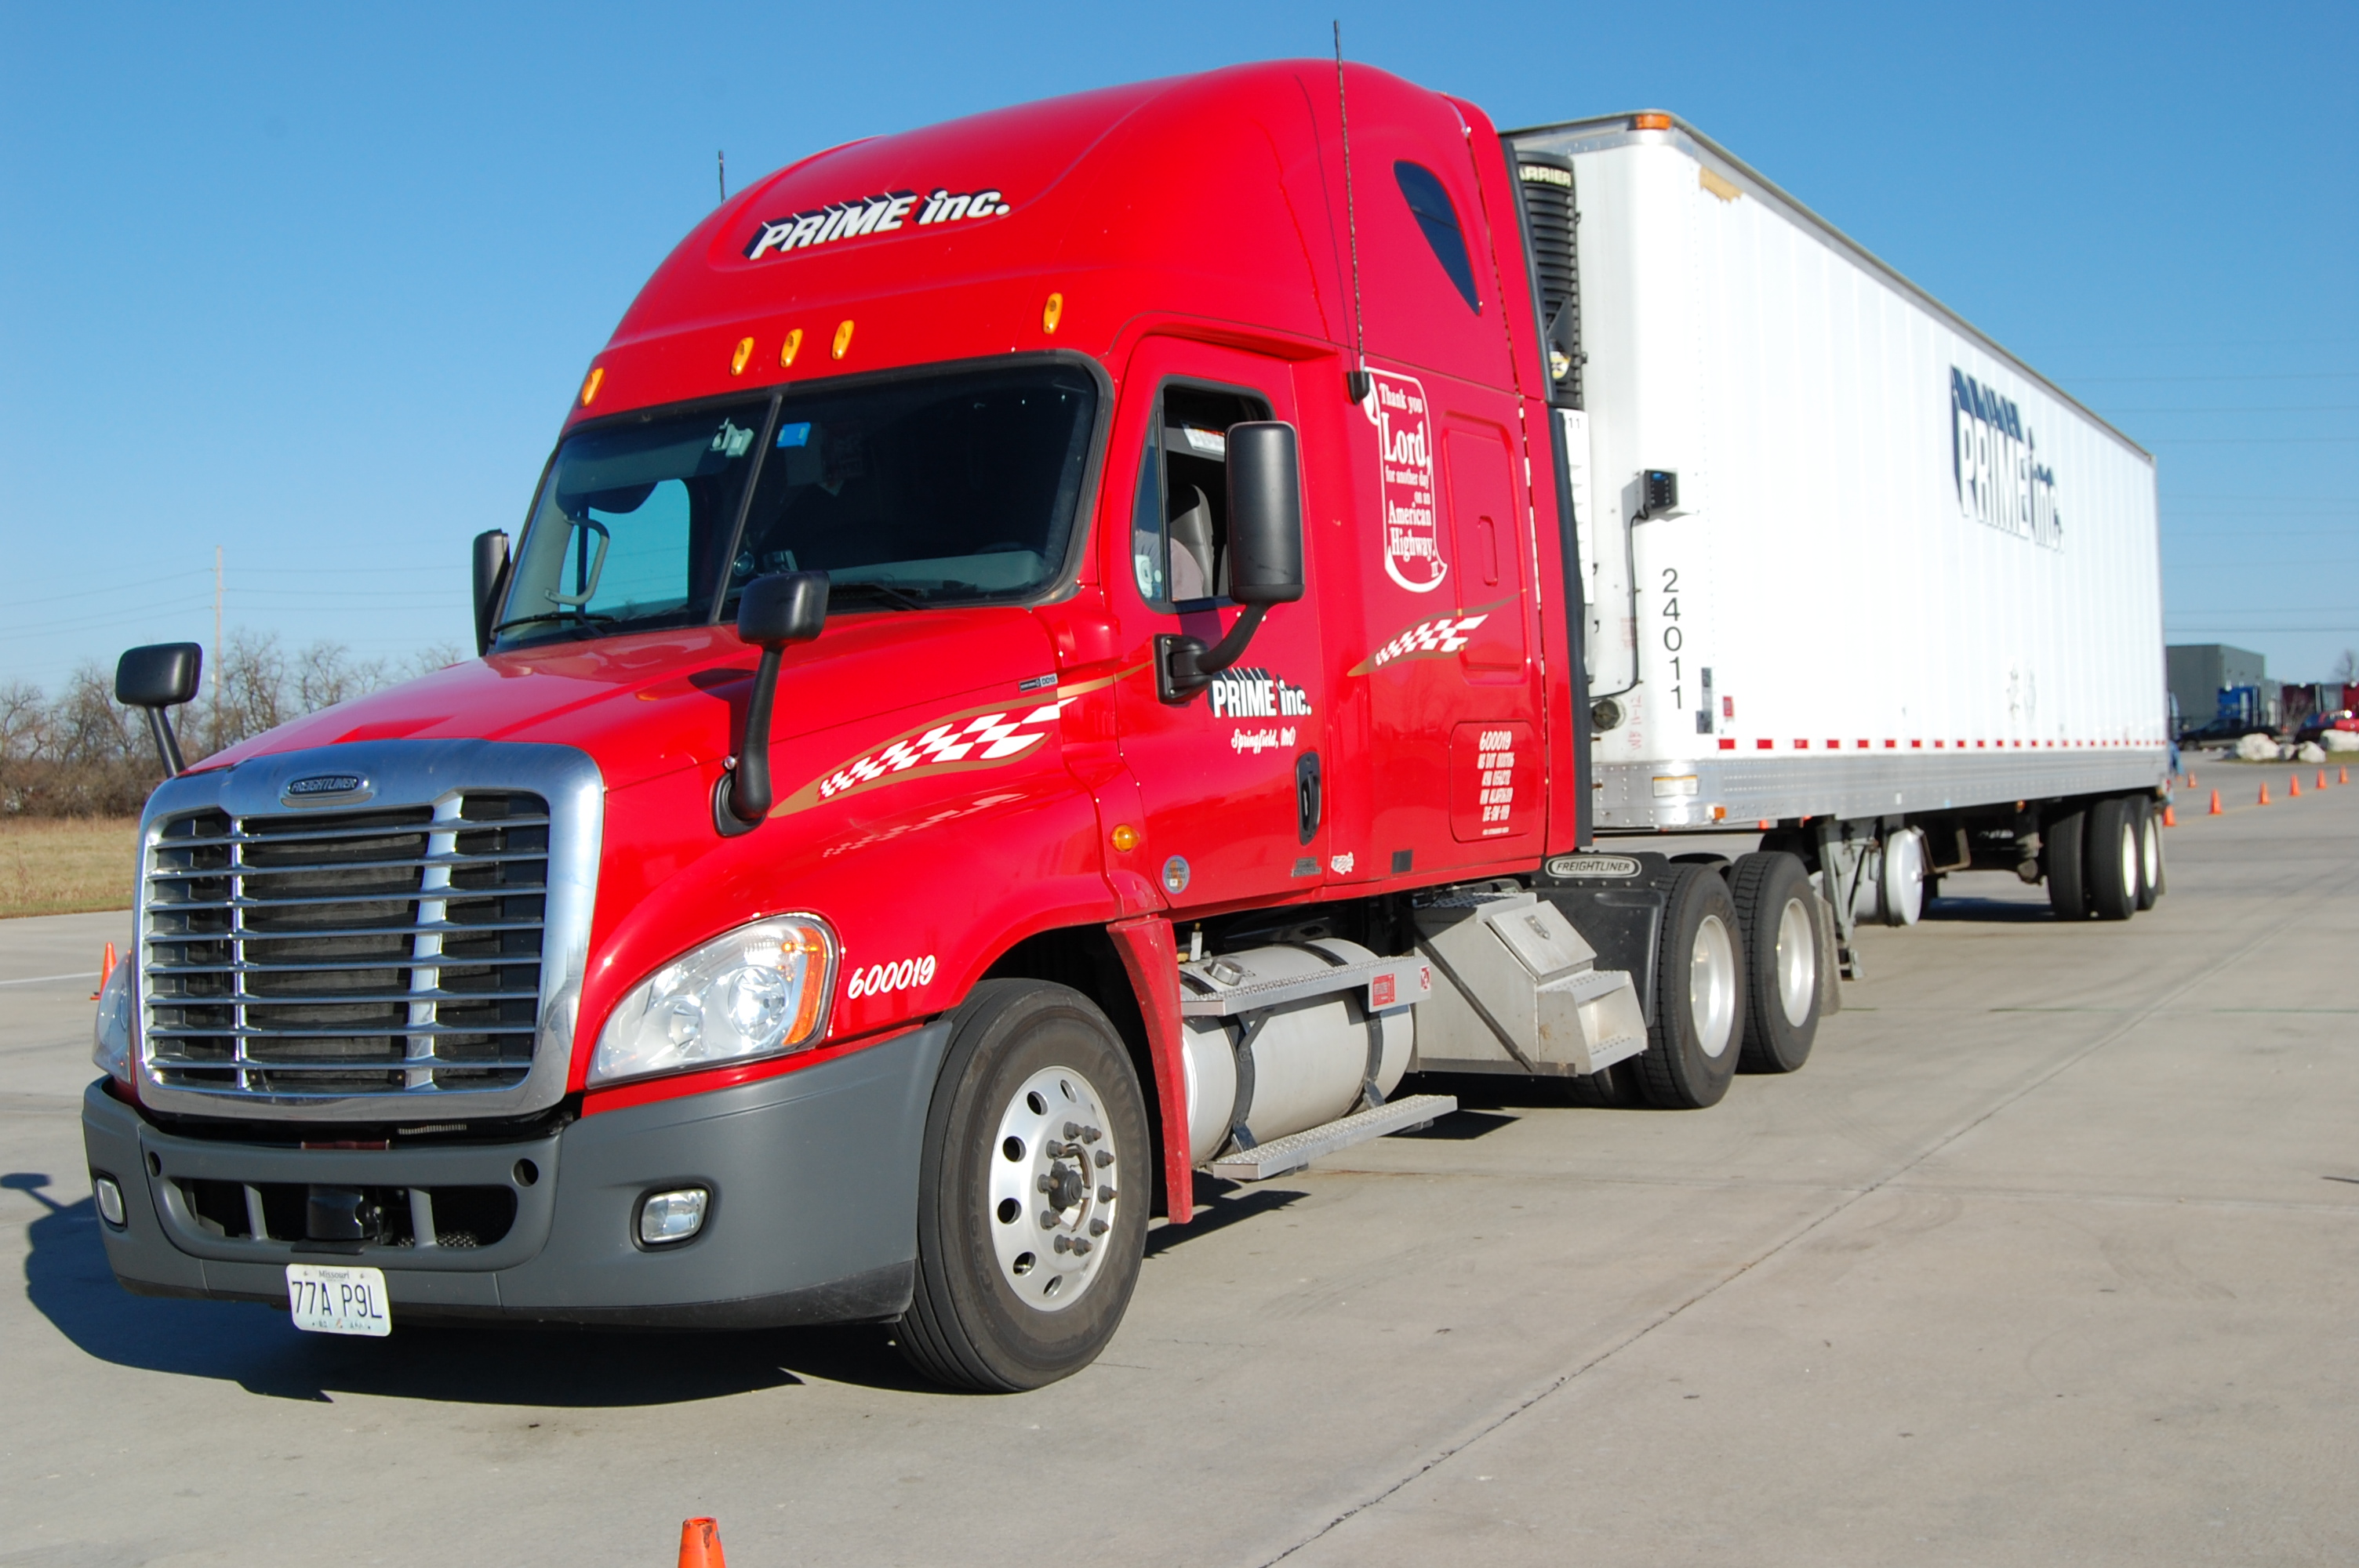 Prime trucking co submited images